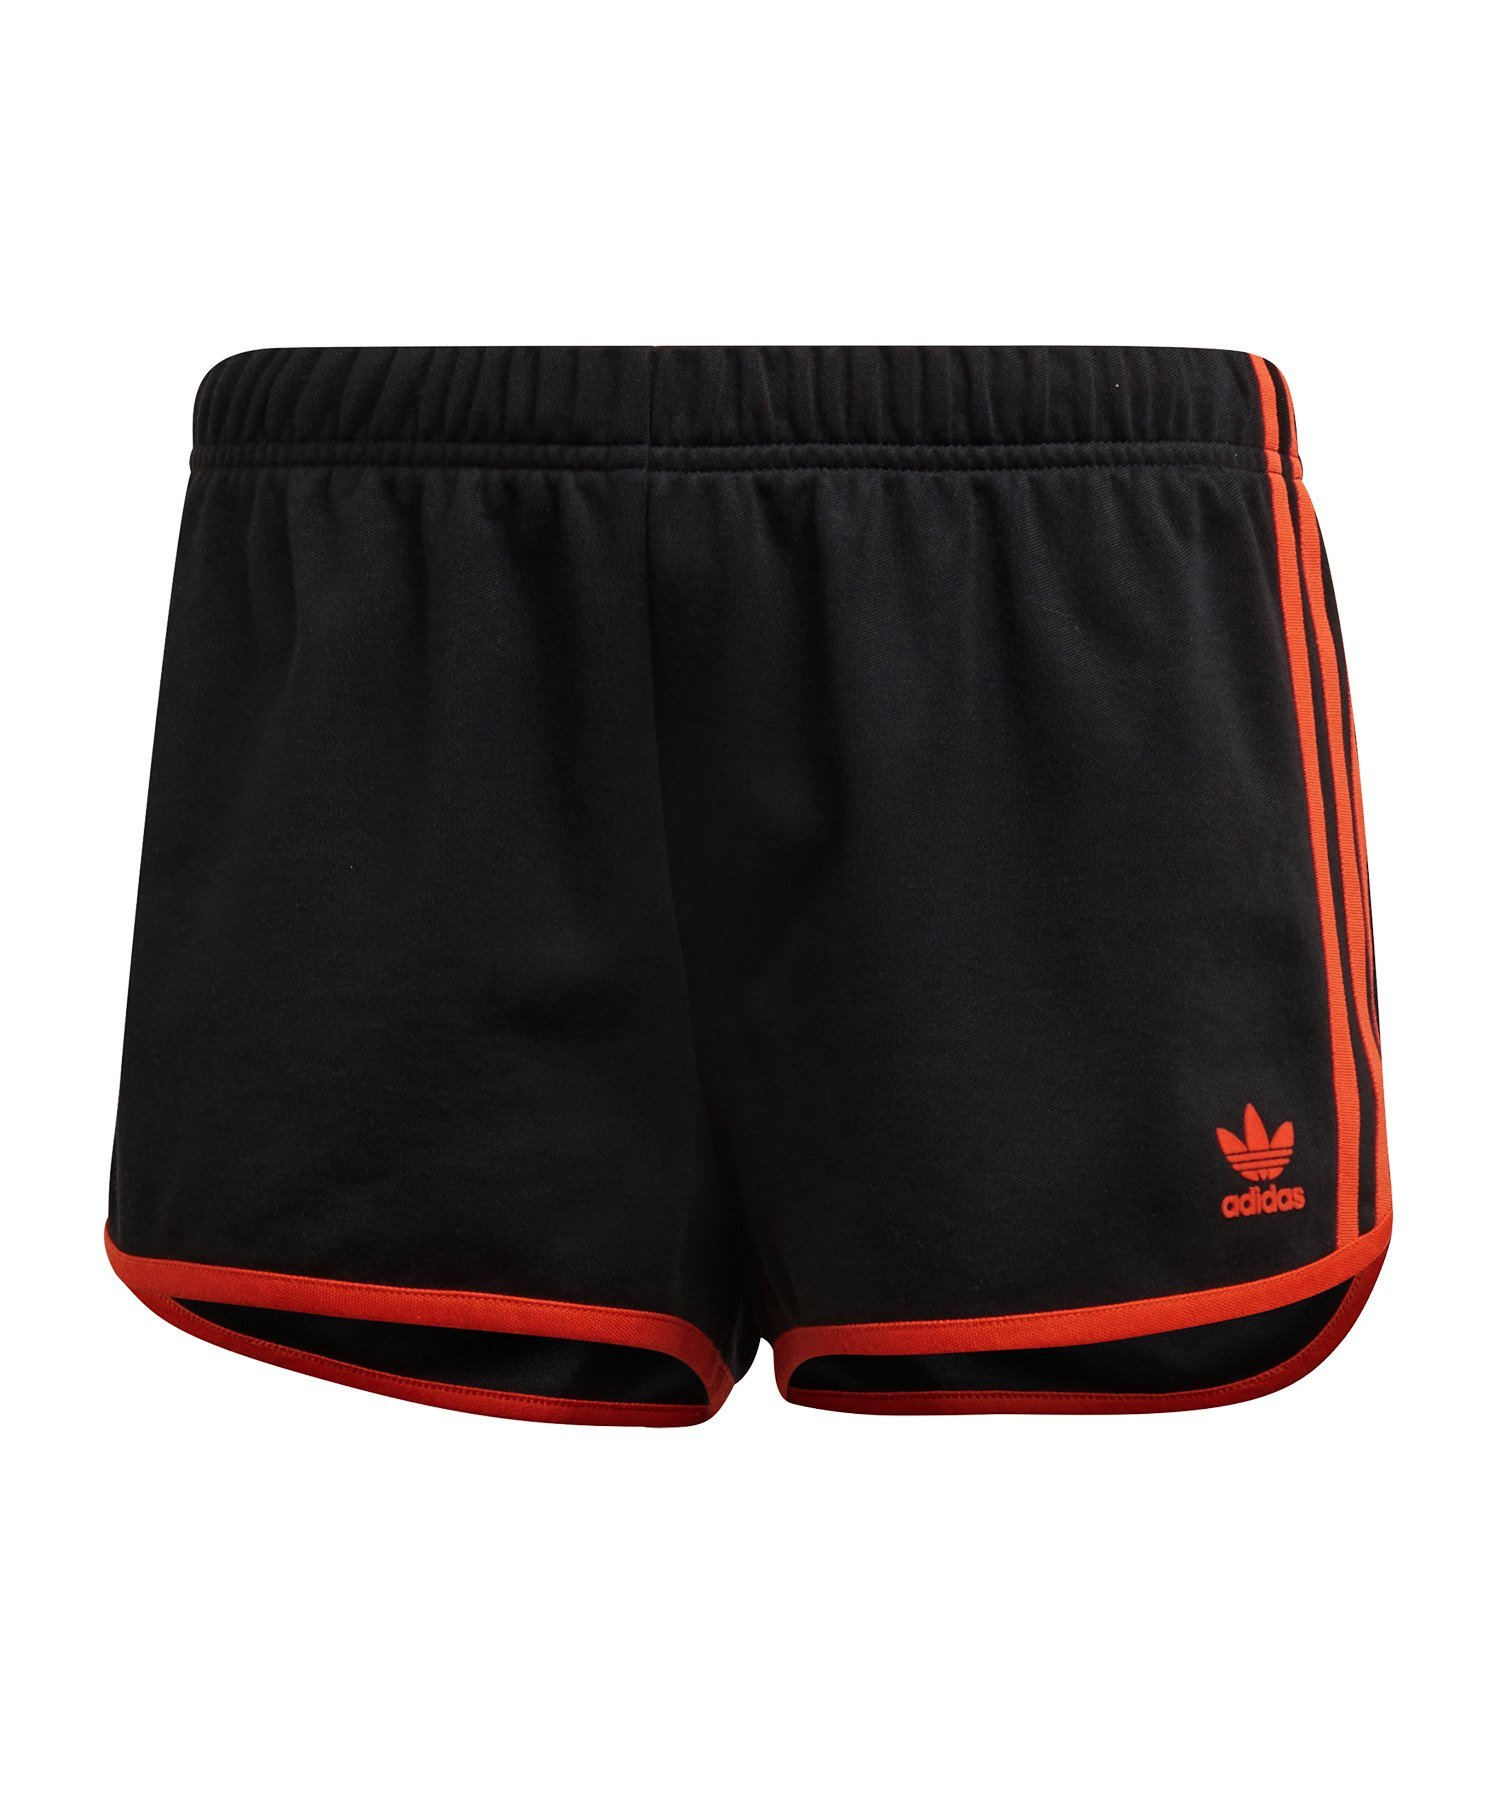 adidas Originals Short Hose kurz Damen Schwarz